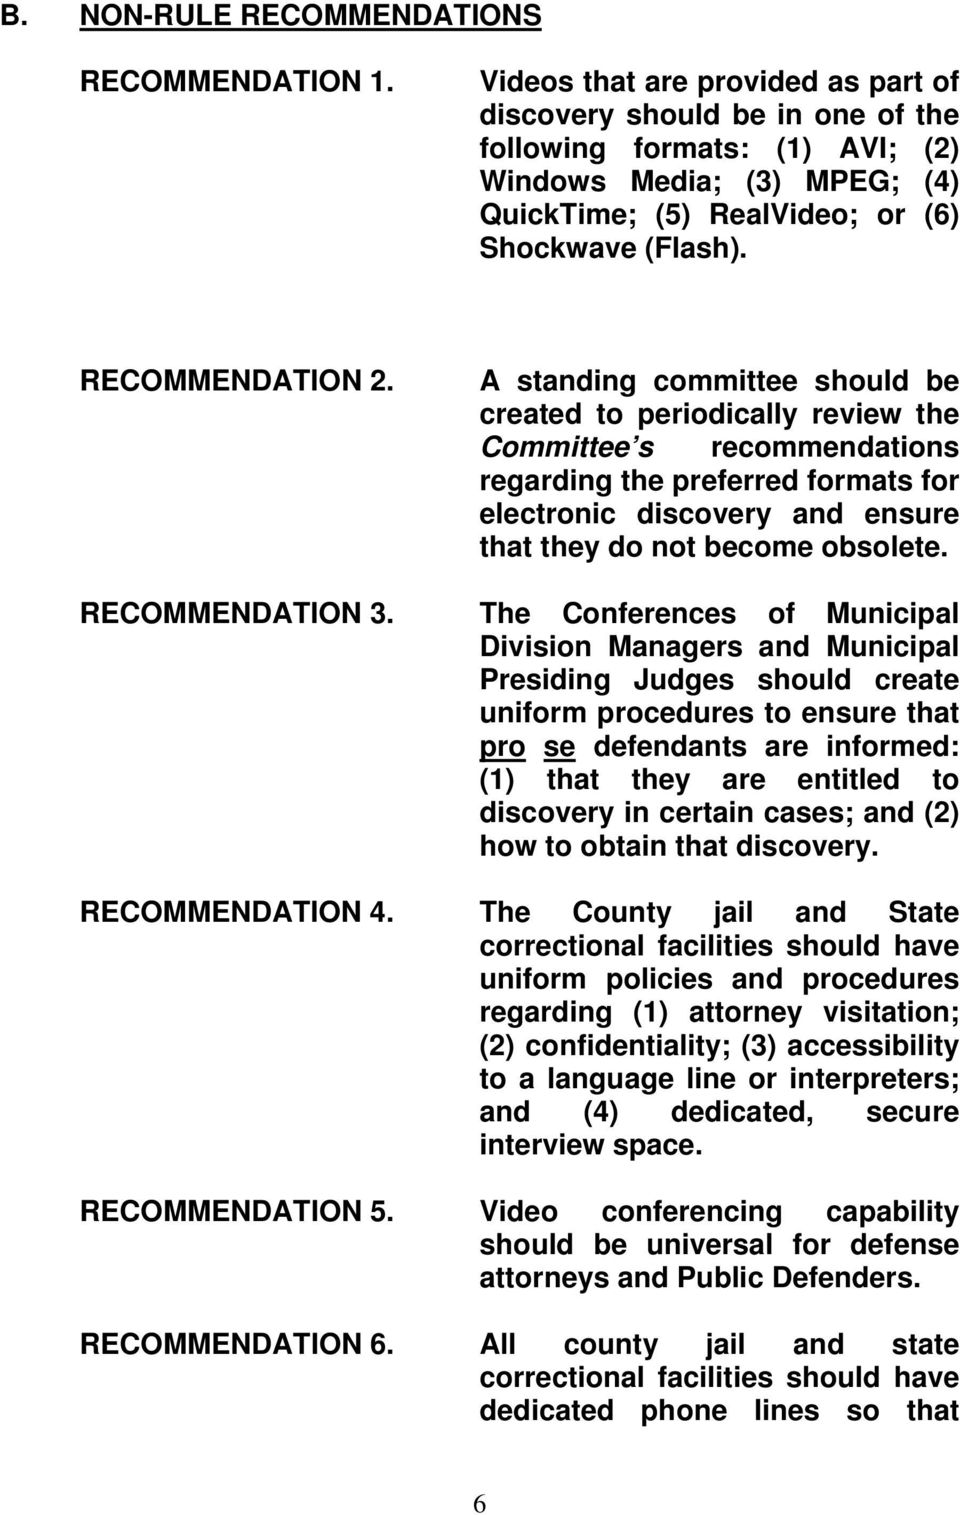 A standing committee should be created to periodically review the Committee s recommendations regarding the preferred formats for electronic discovery and ensure that they do not become obsolete.